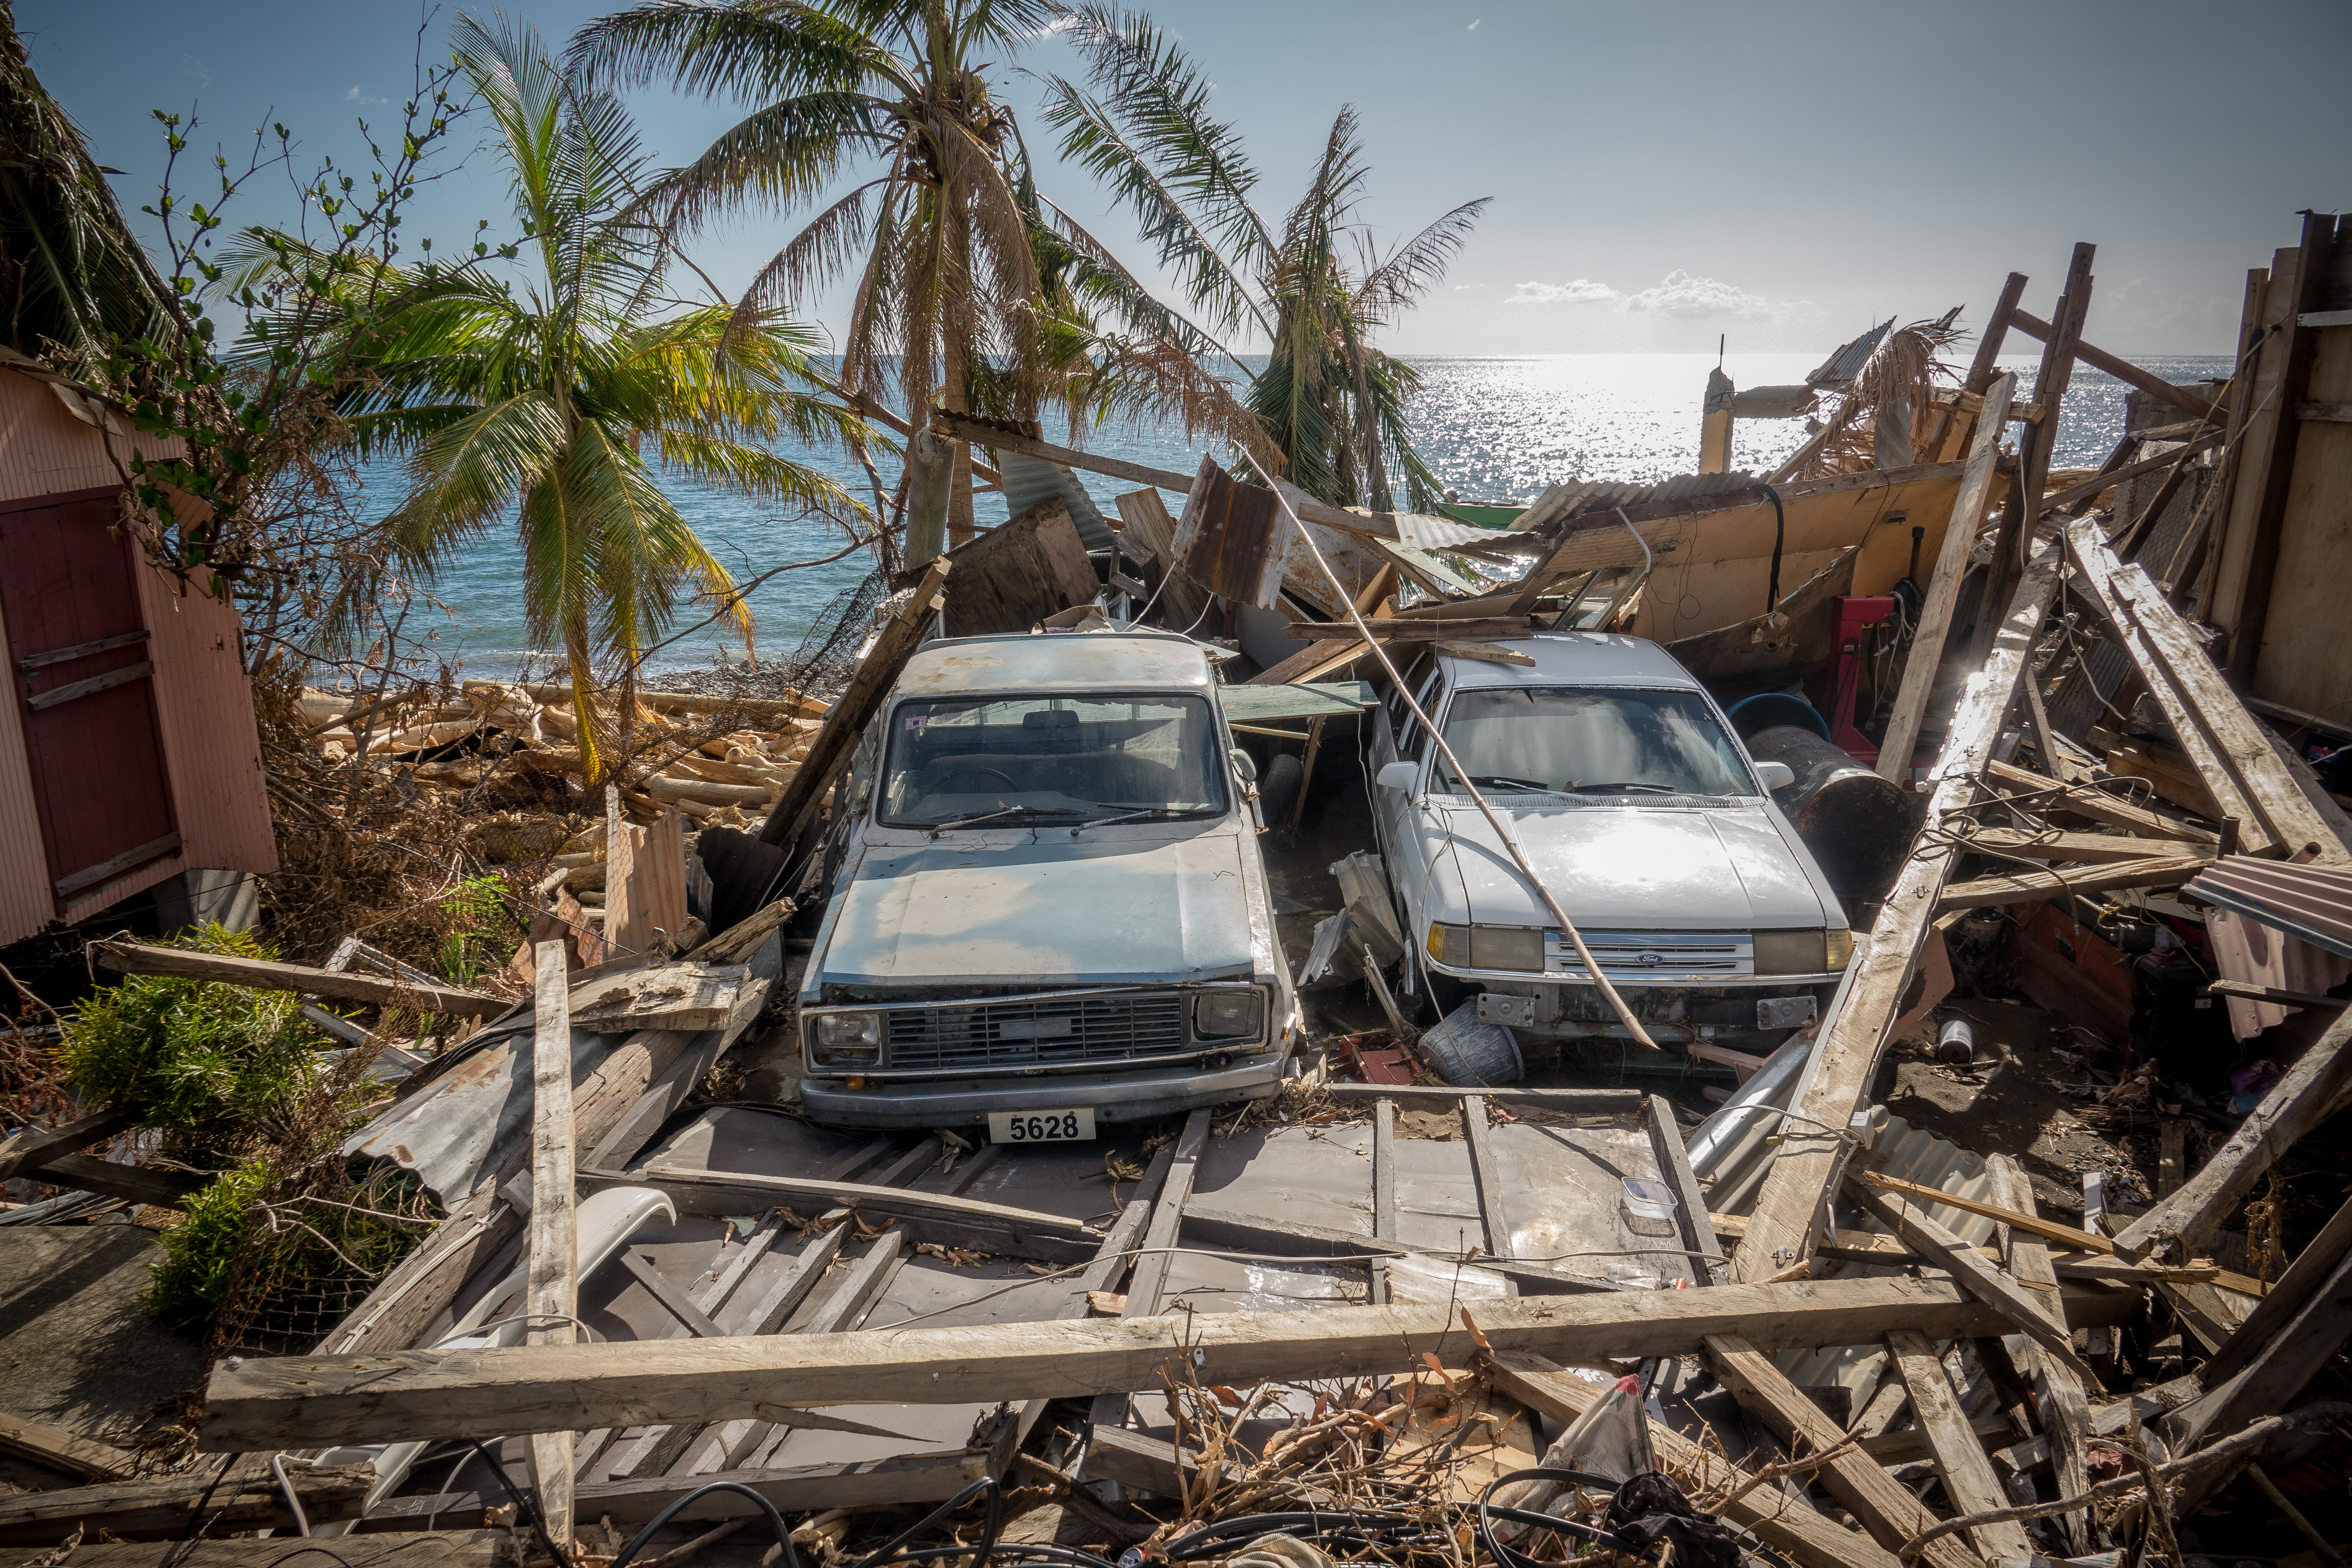 The hurricanes of 2017 devastated Dominica, an island nation in the Caribbean Sea. Photo courtesy of Global Medic.